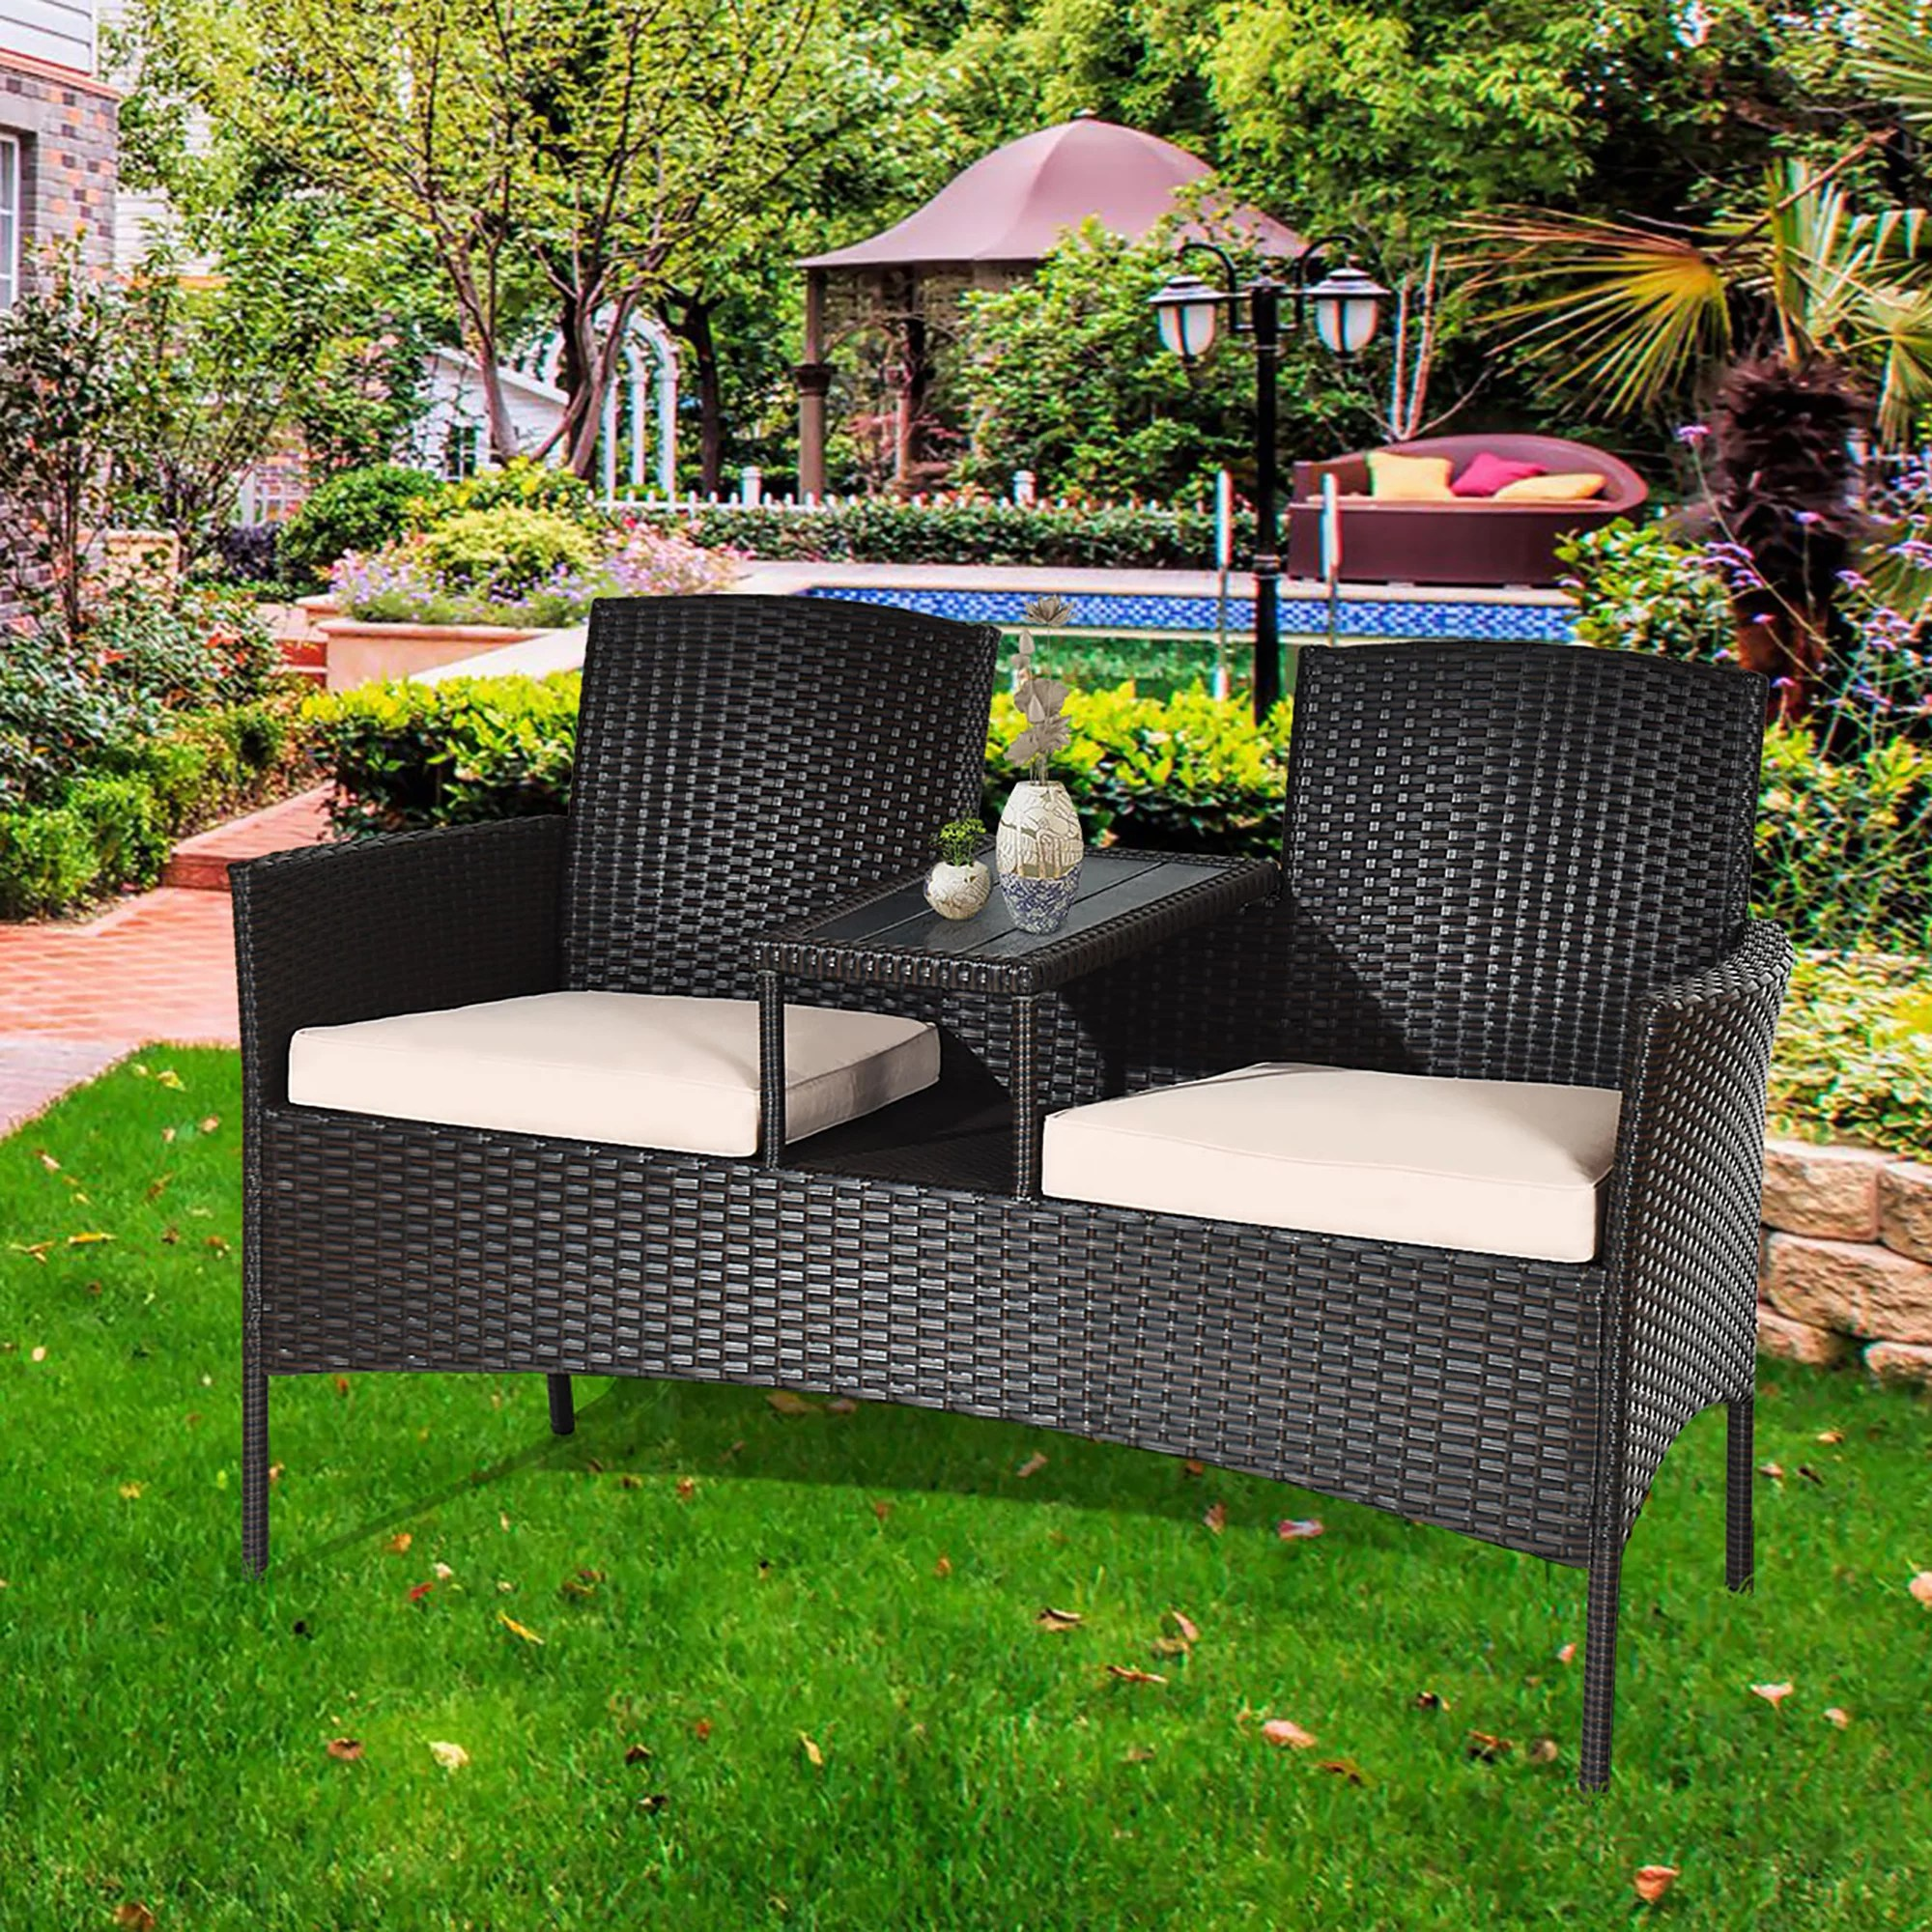 costway patio rattan chat set seat sofa loveseat table chairs conversation cushioned